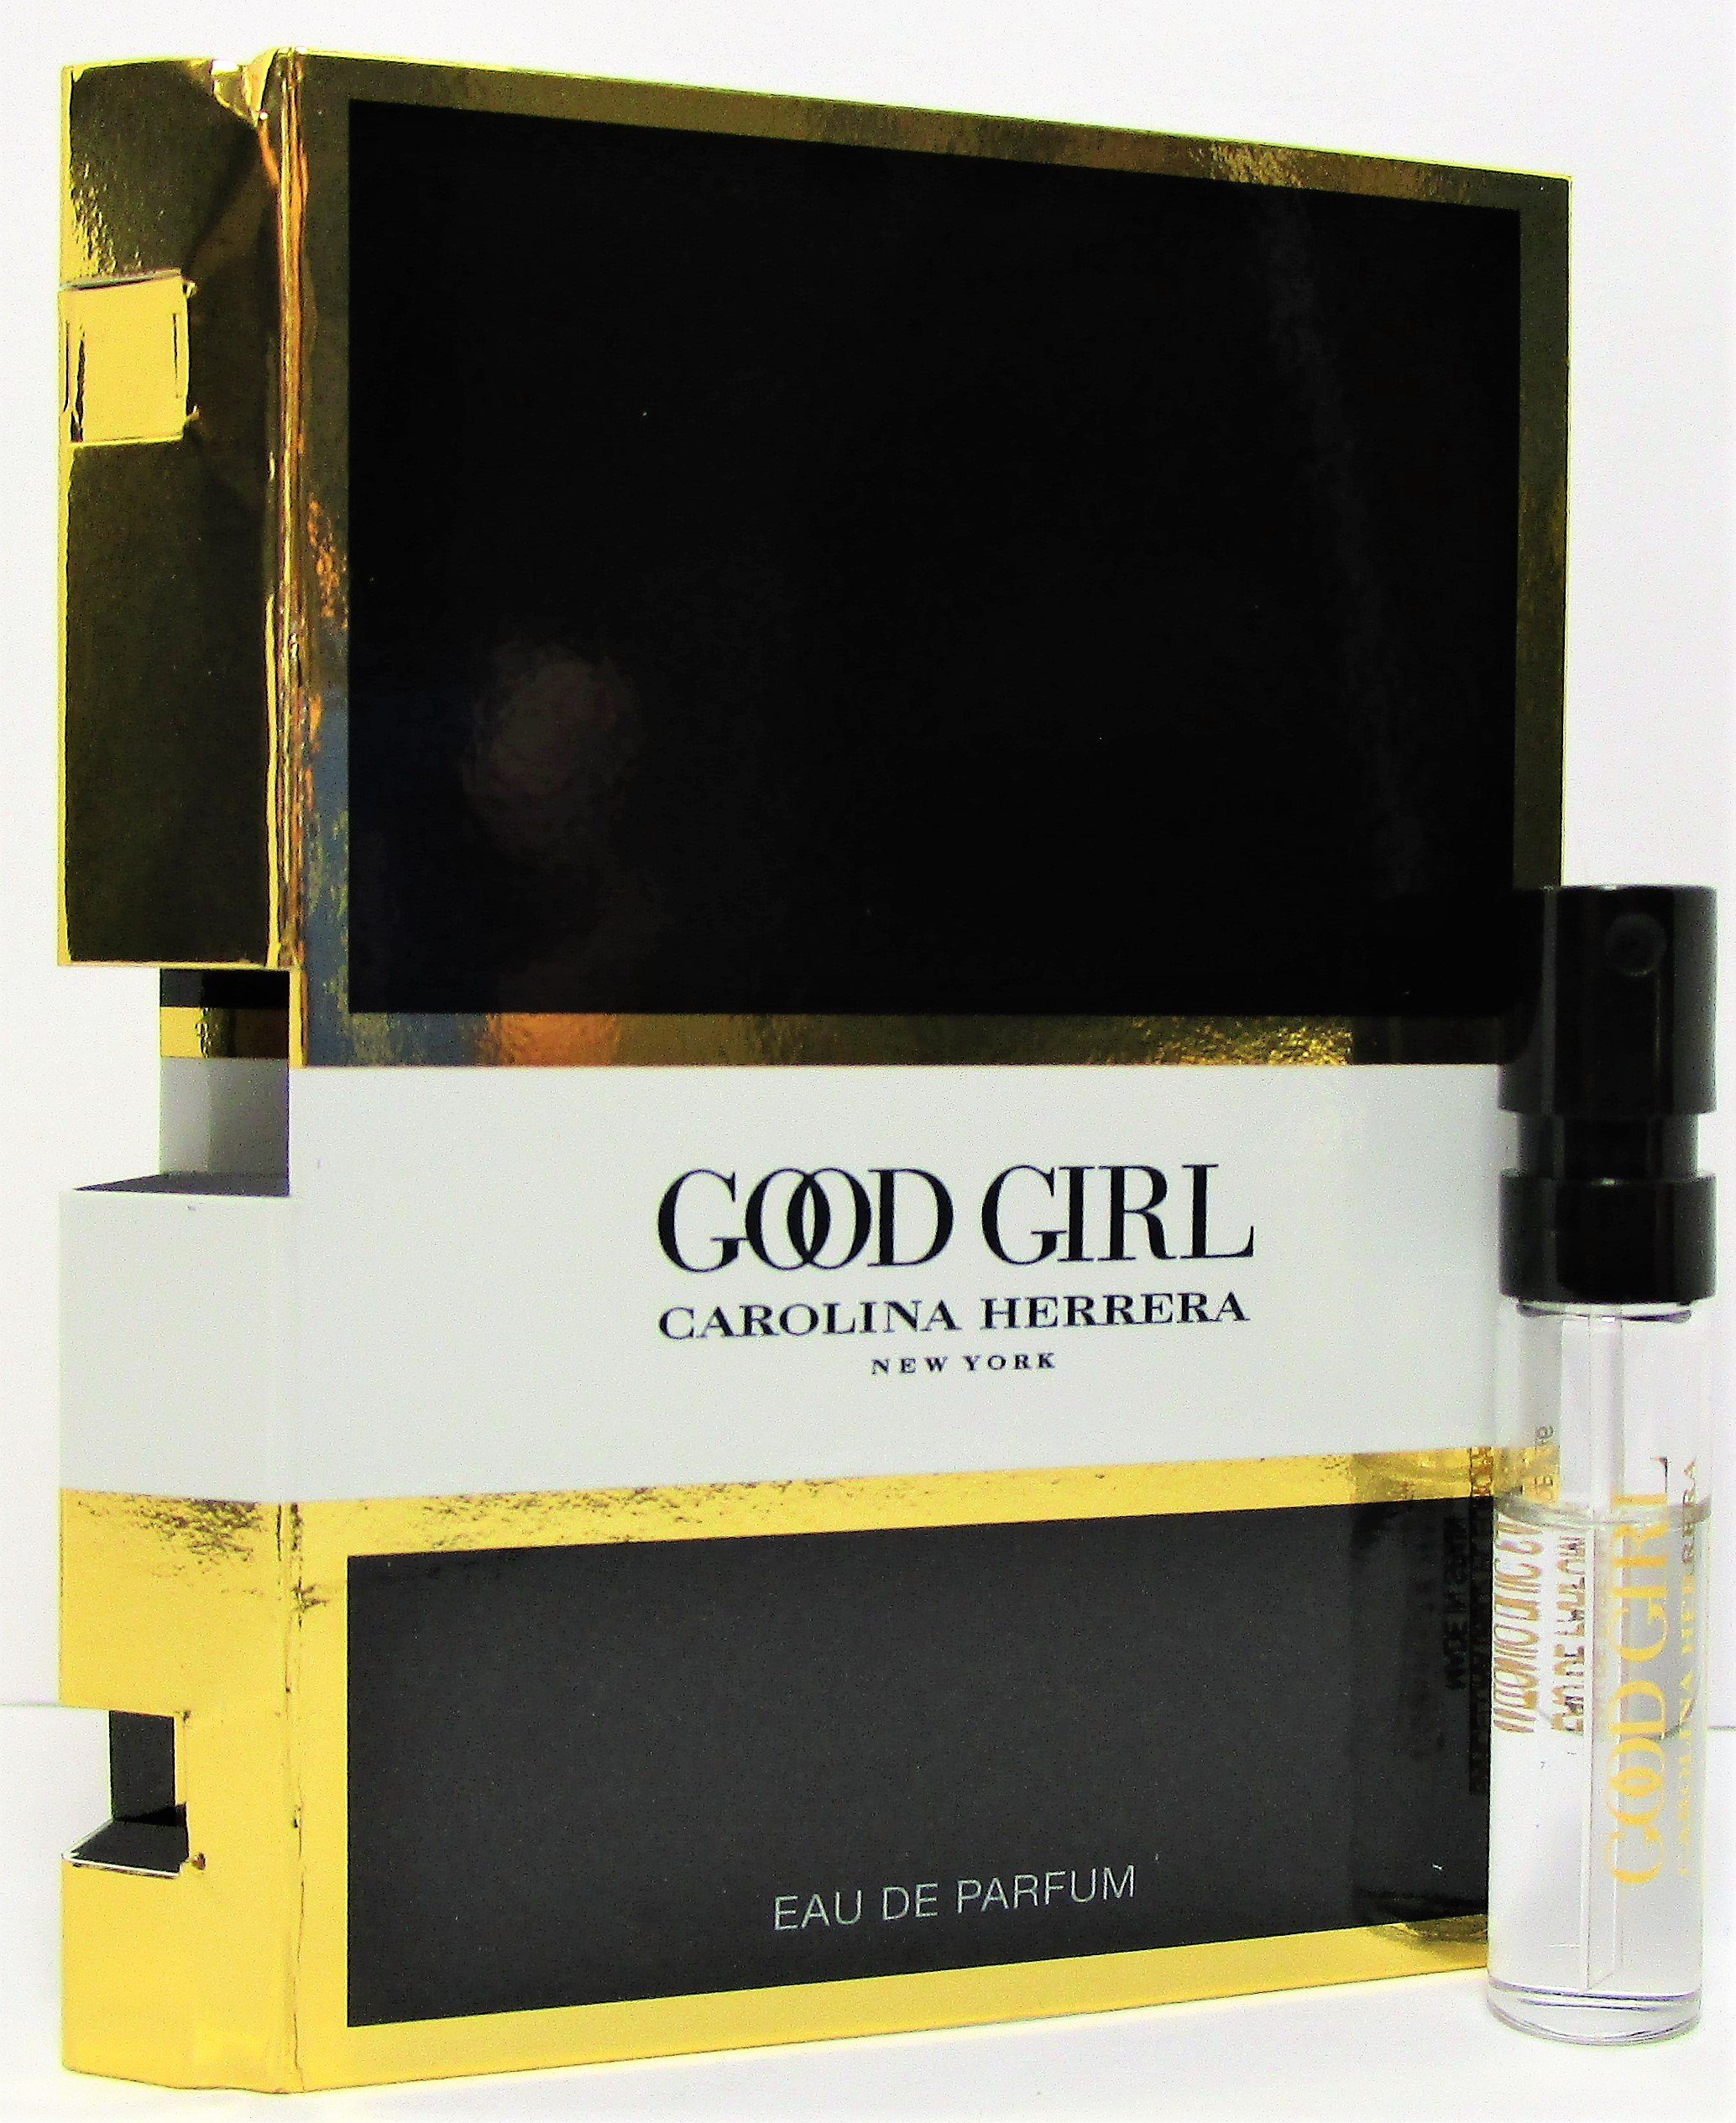 d5284793c4daa Carolina Herrera Good Girl Eau de Parfum Vial Spray for Women 0.05 oz   1.5  ml